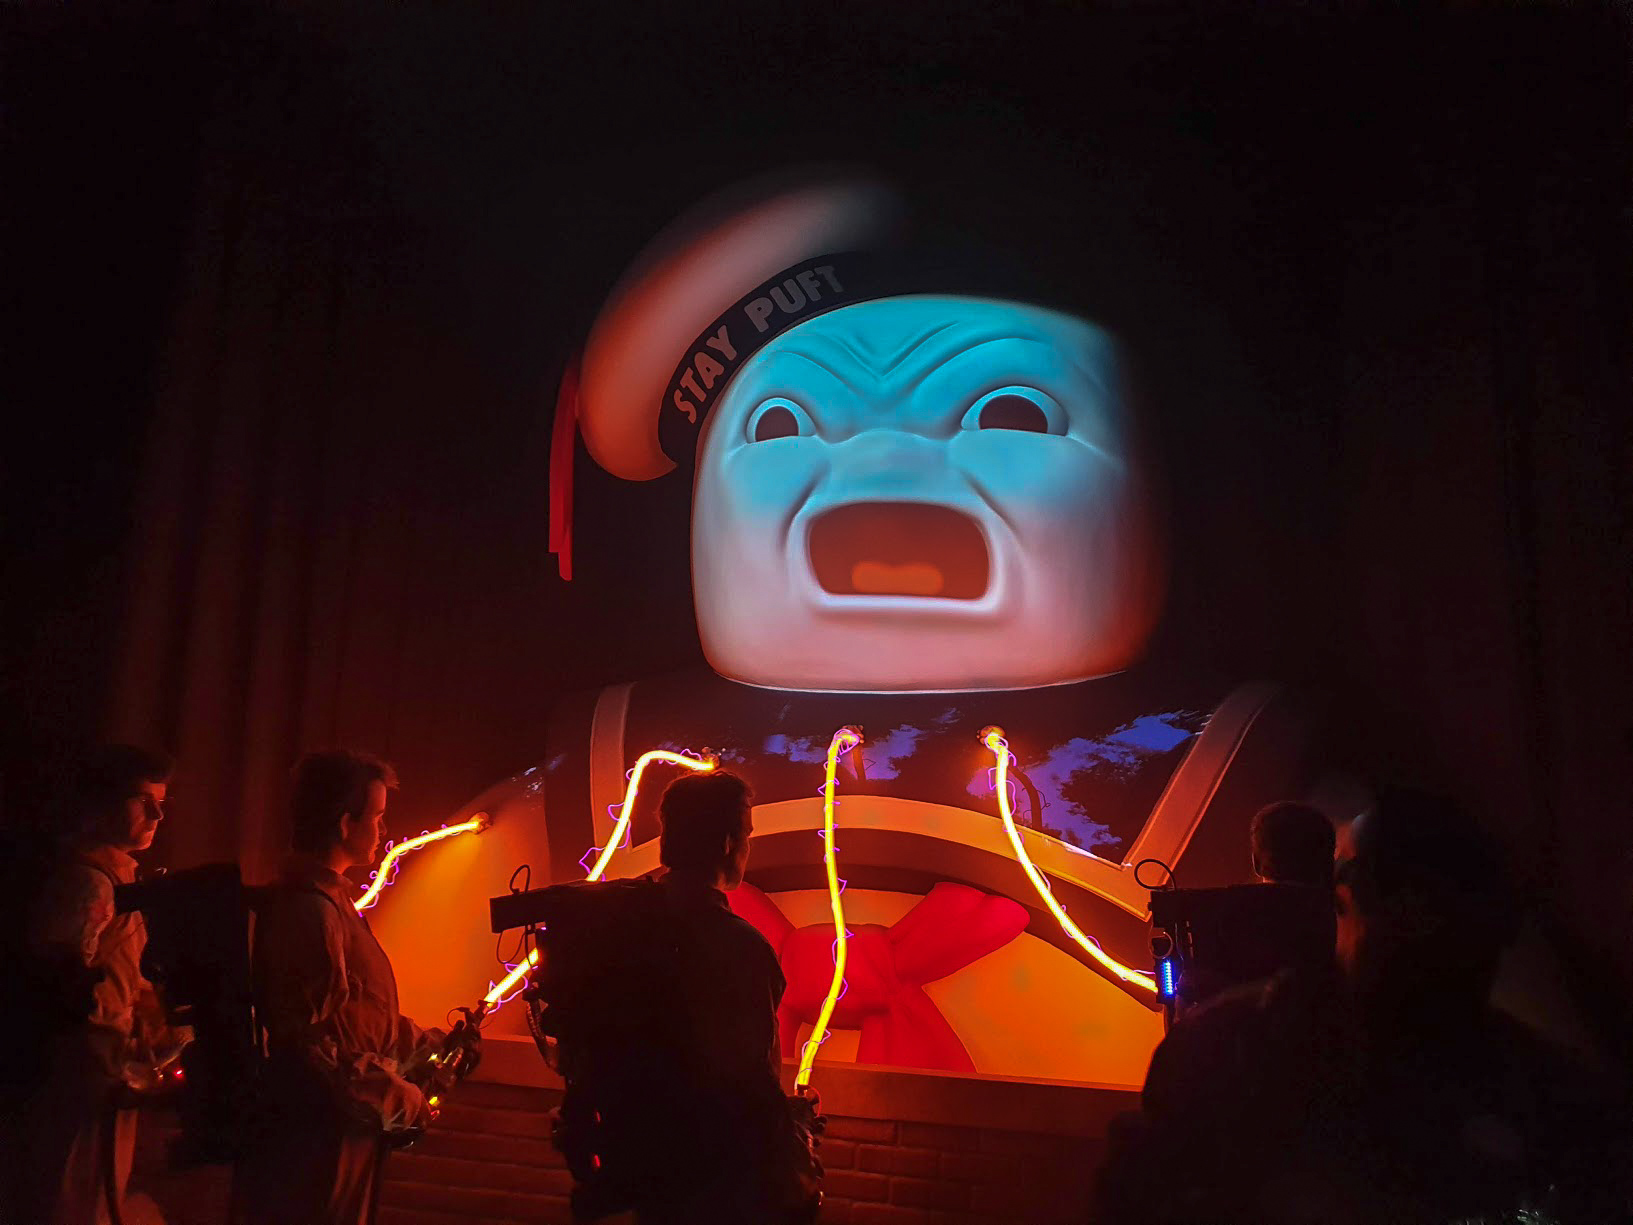 The giant Stay Puff Marshmallow Man from Ghostbusters